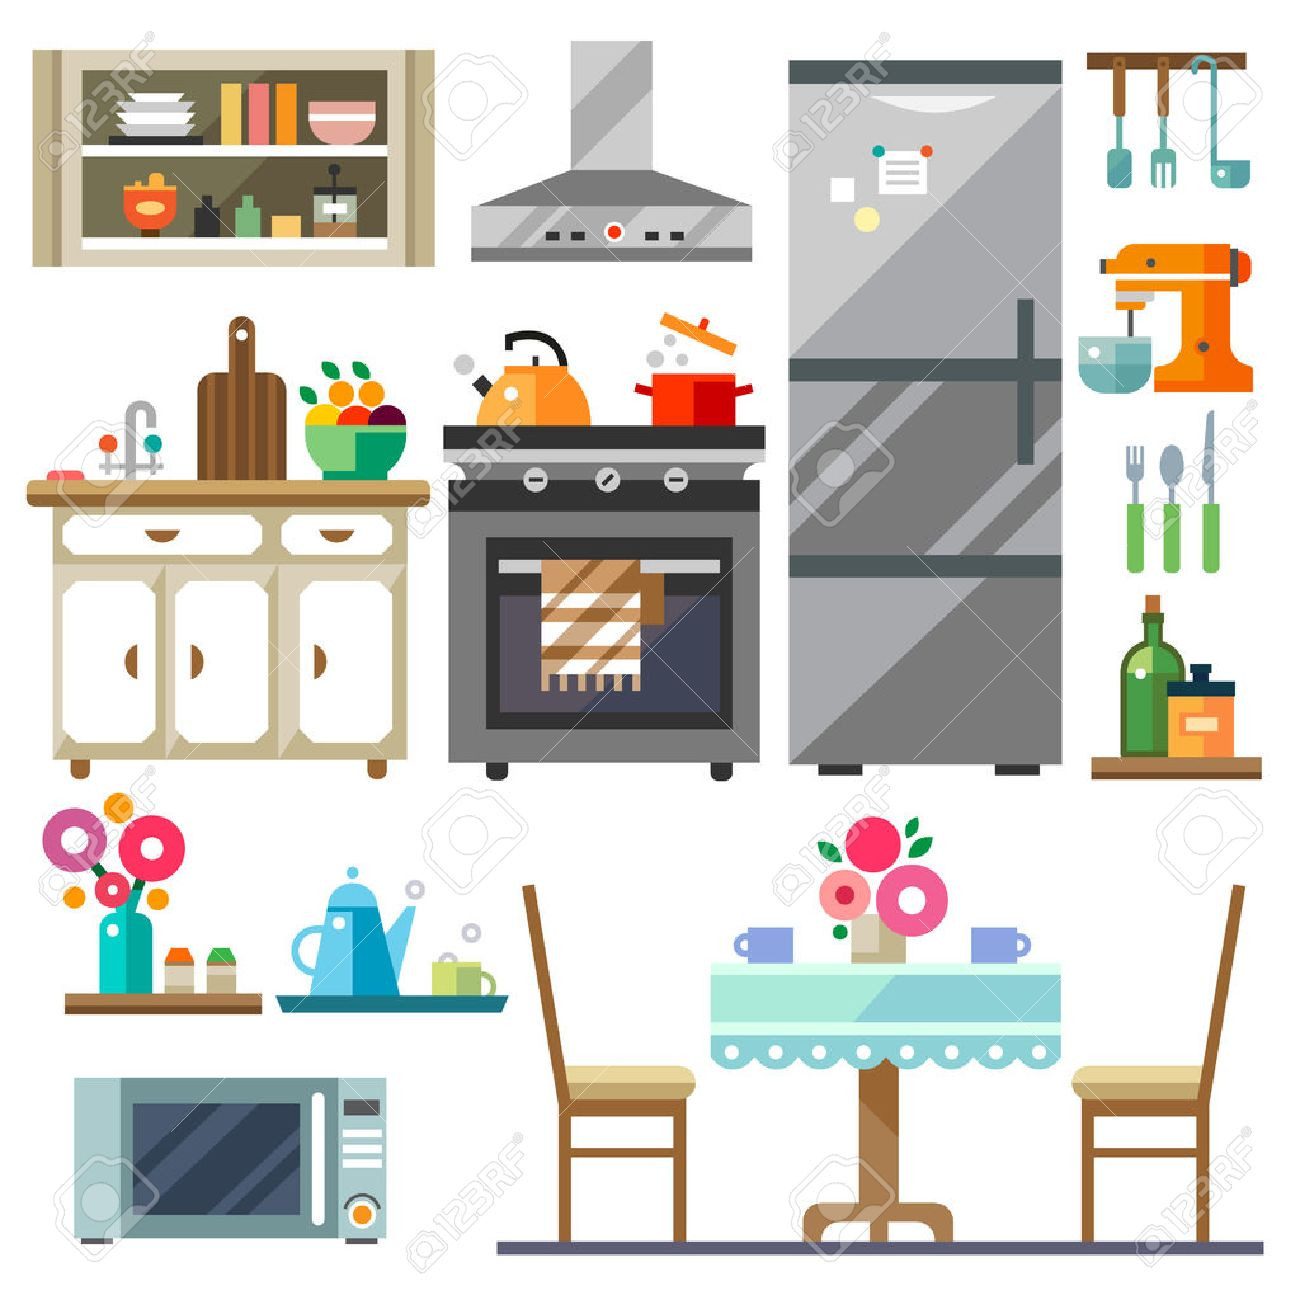 Vector Flat Illustration Home Furniture Kitchen Interior DesignSet Of Elements Refrigerator Stove Microwavecupboards Dishes Table